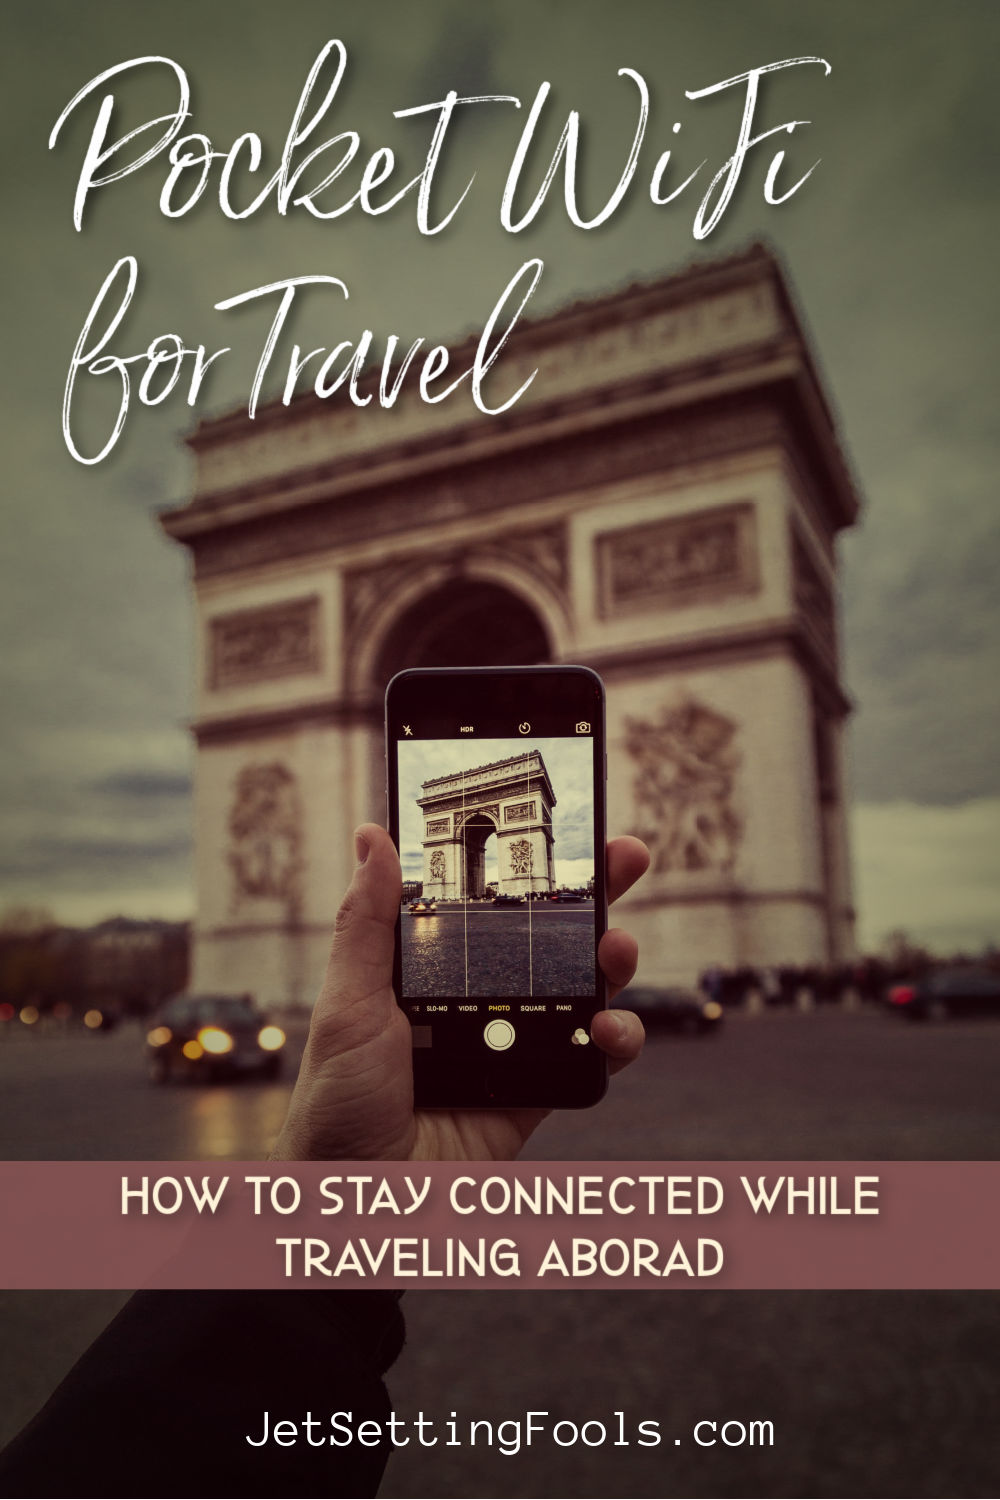 Pocket WiFi for Travel How To Stay Connected Abroad by JetSettingFools.com